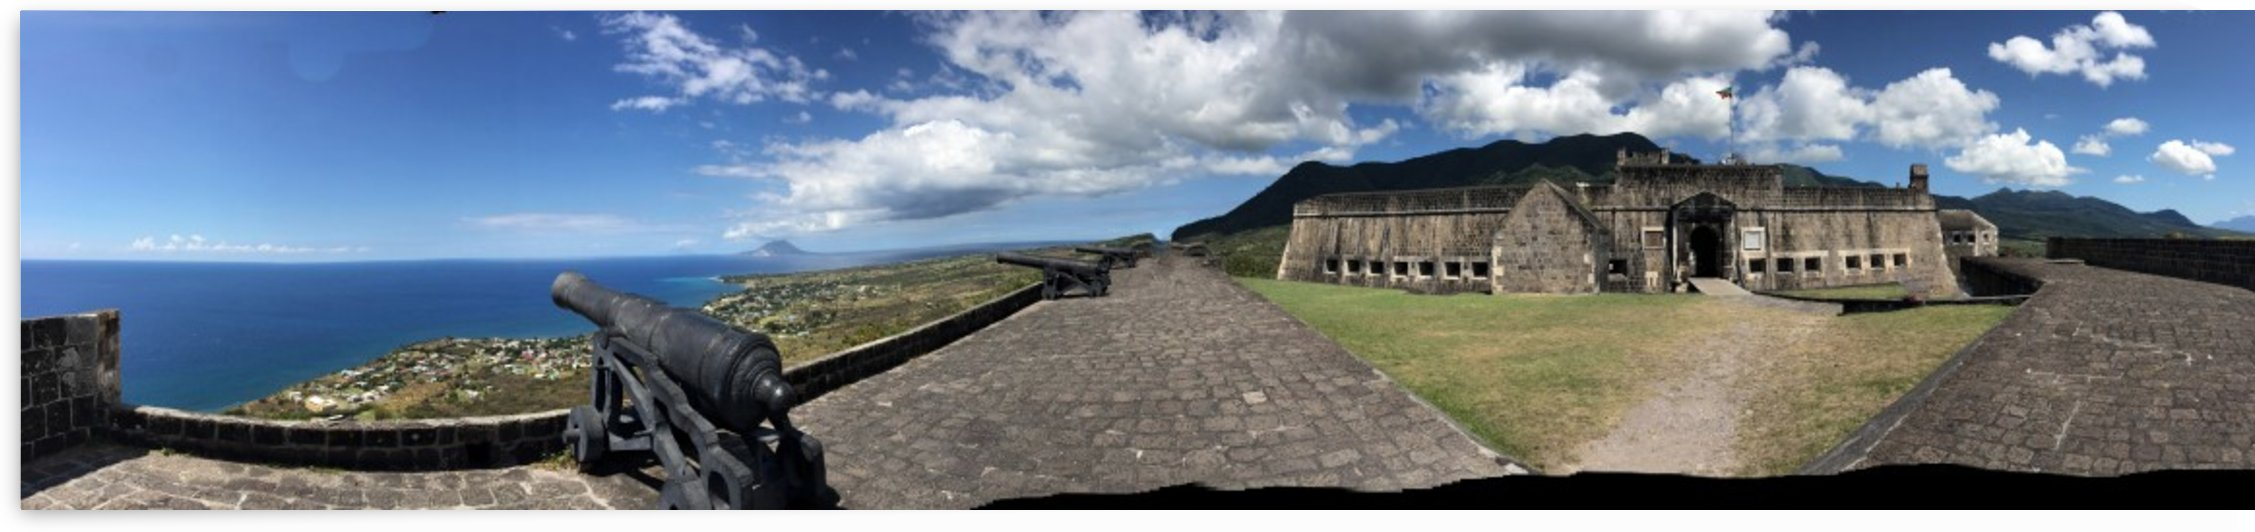 Brimstone Hill Fortress St. Kitts   by On da Raks